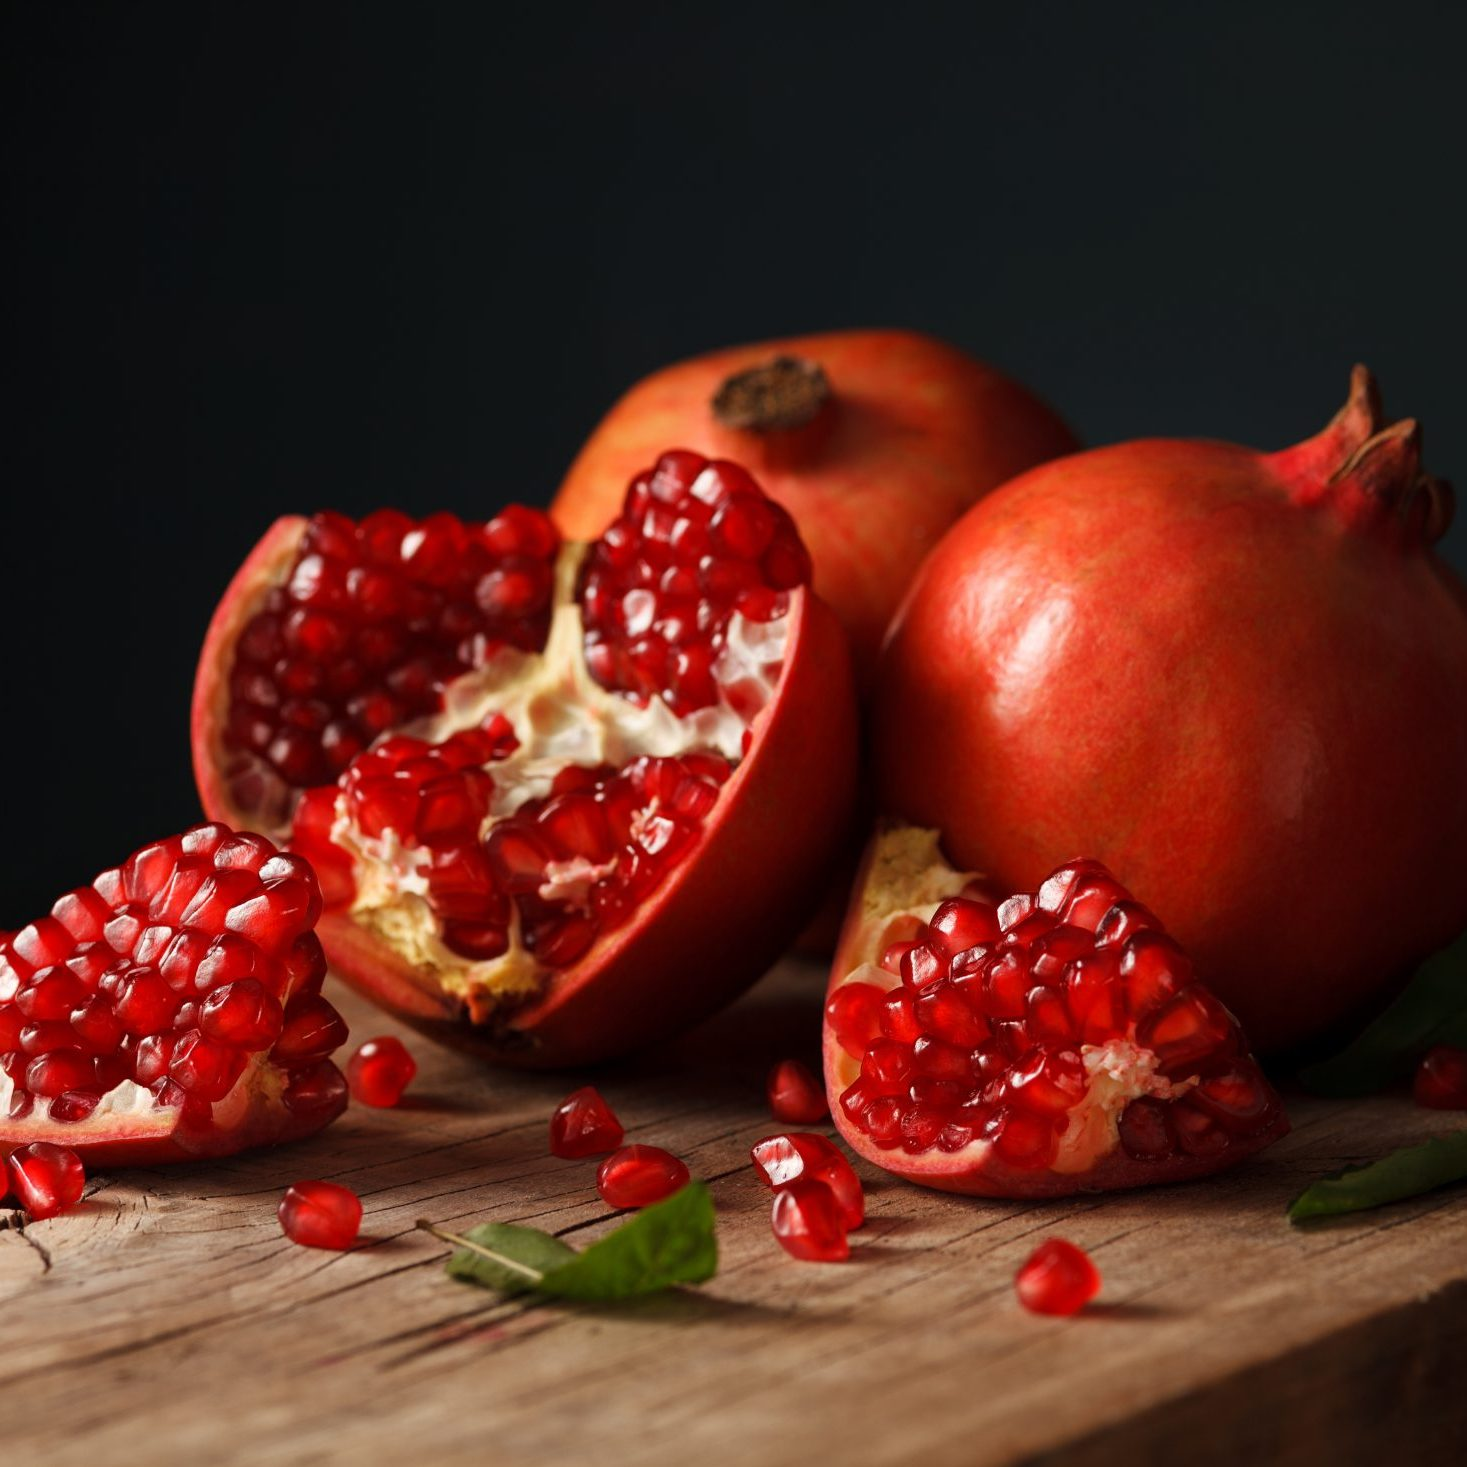 Keto pomegranate